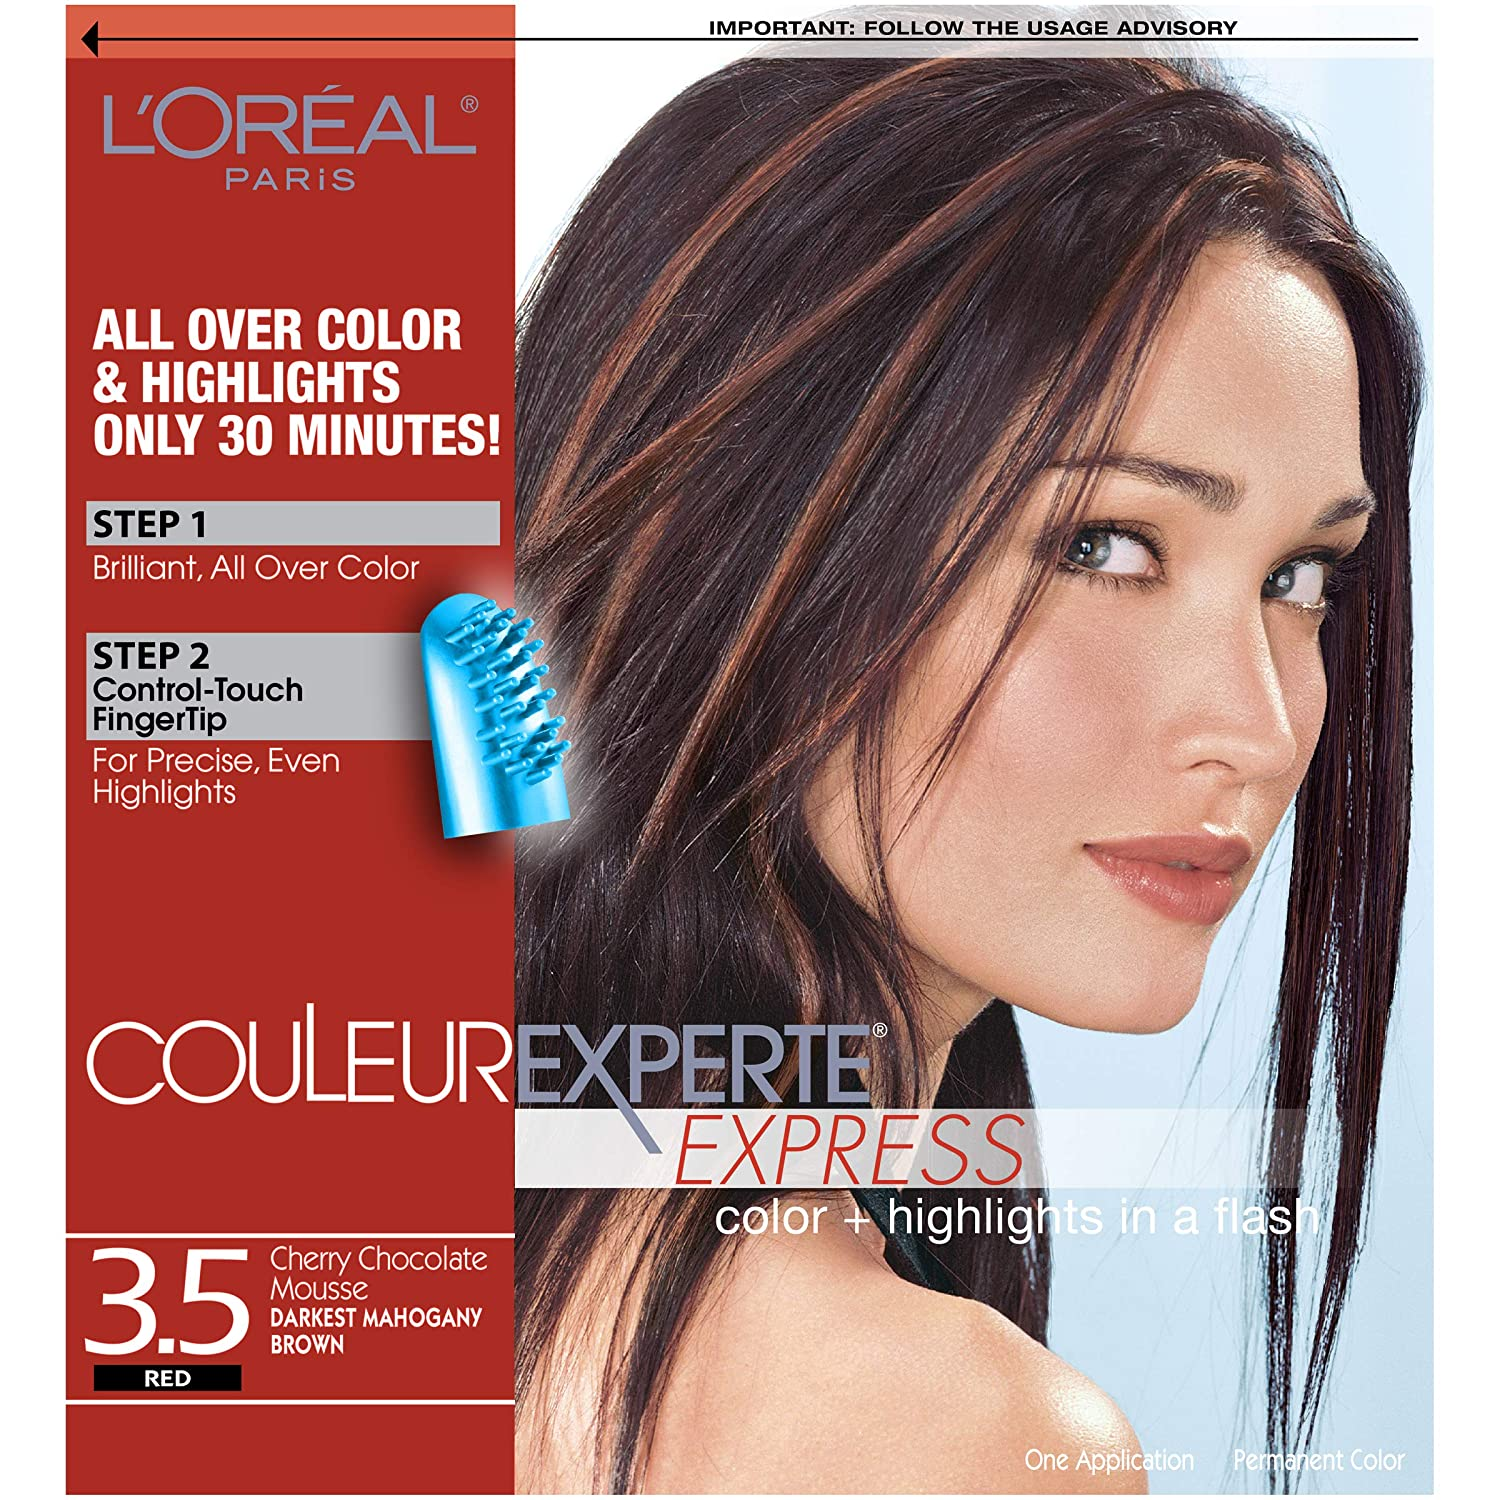 L'Oreal Paris Couleur Experte Cherry Chocolate Mousse 3.5 Red